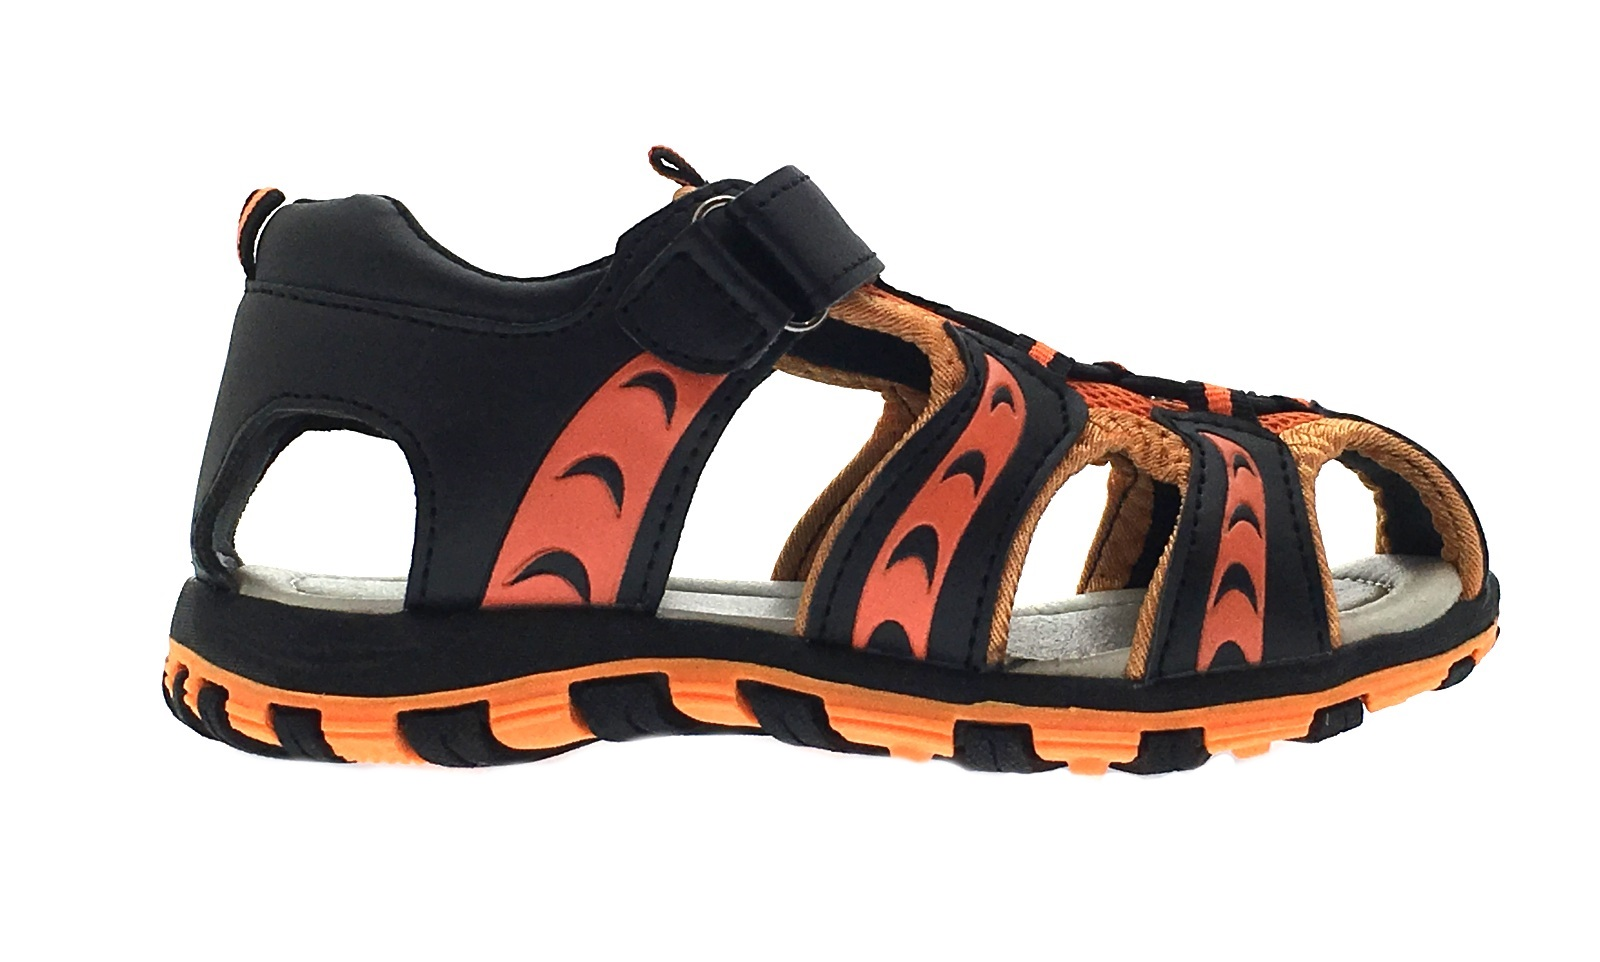 Boys Sports Sandals Closed Toe Walking Comfort Casual Beach Shoes Kids Size    eBay